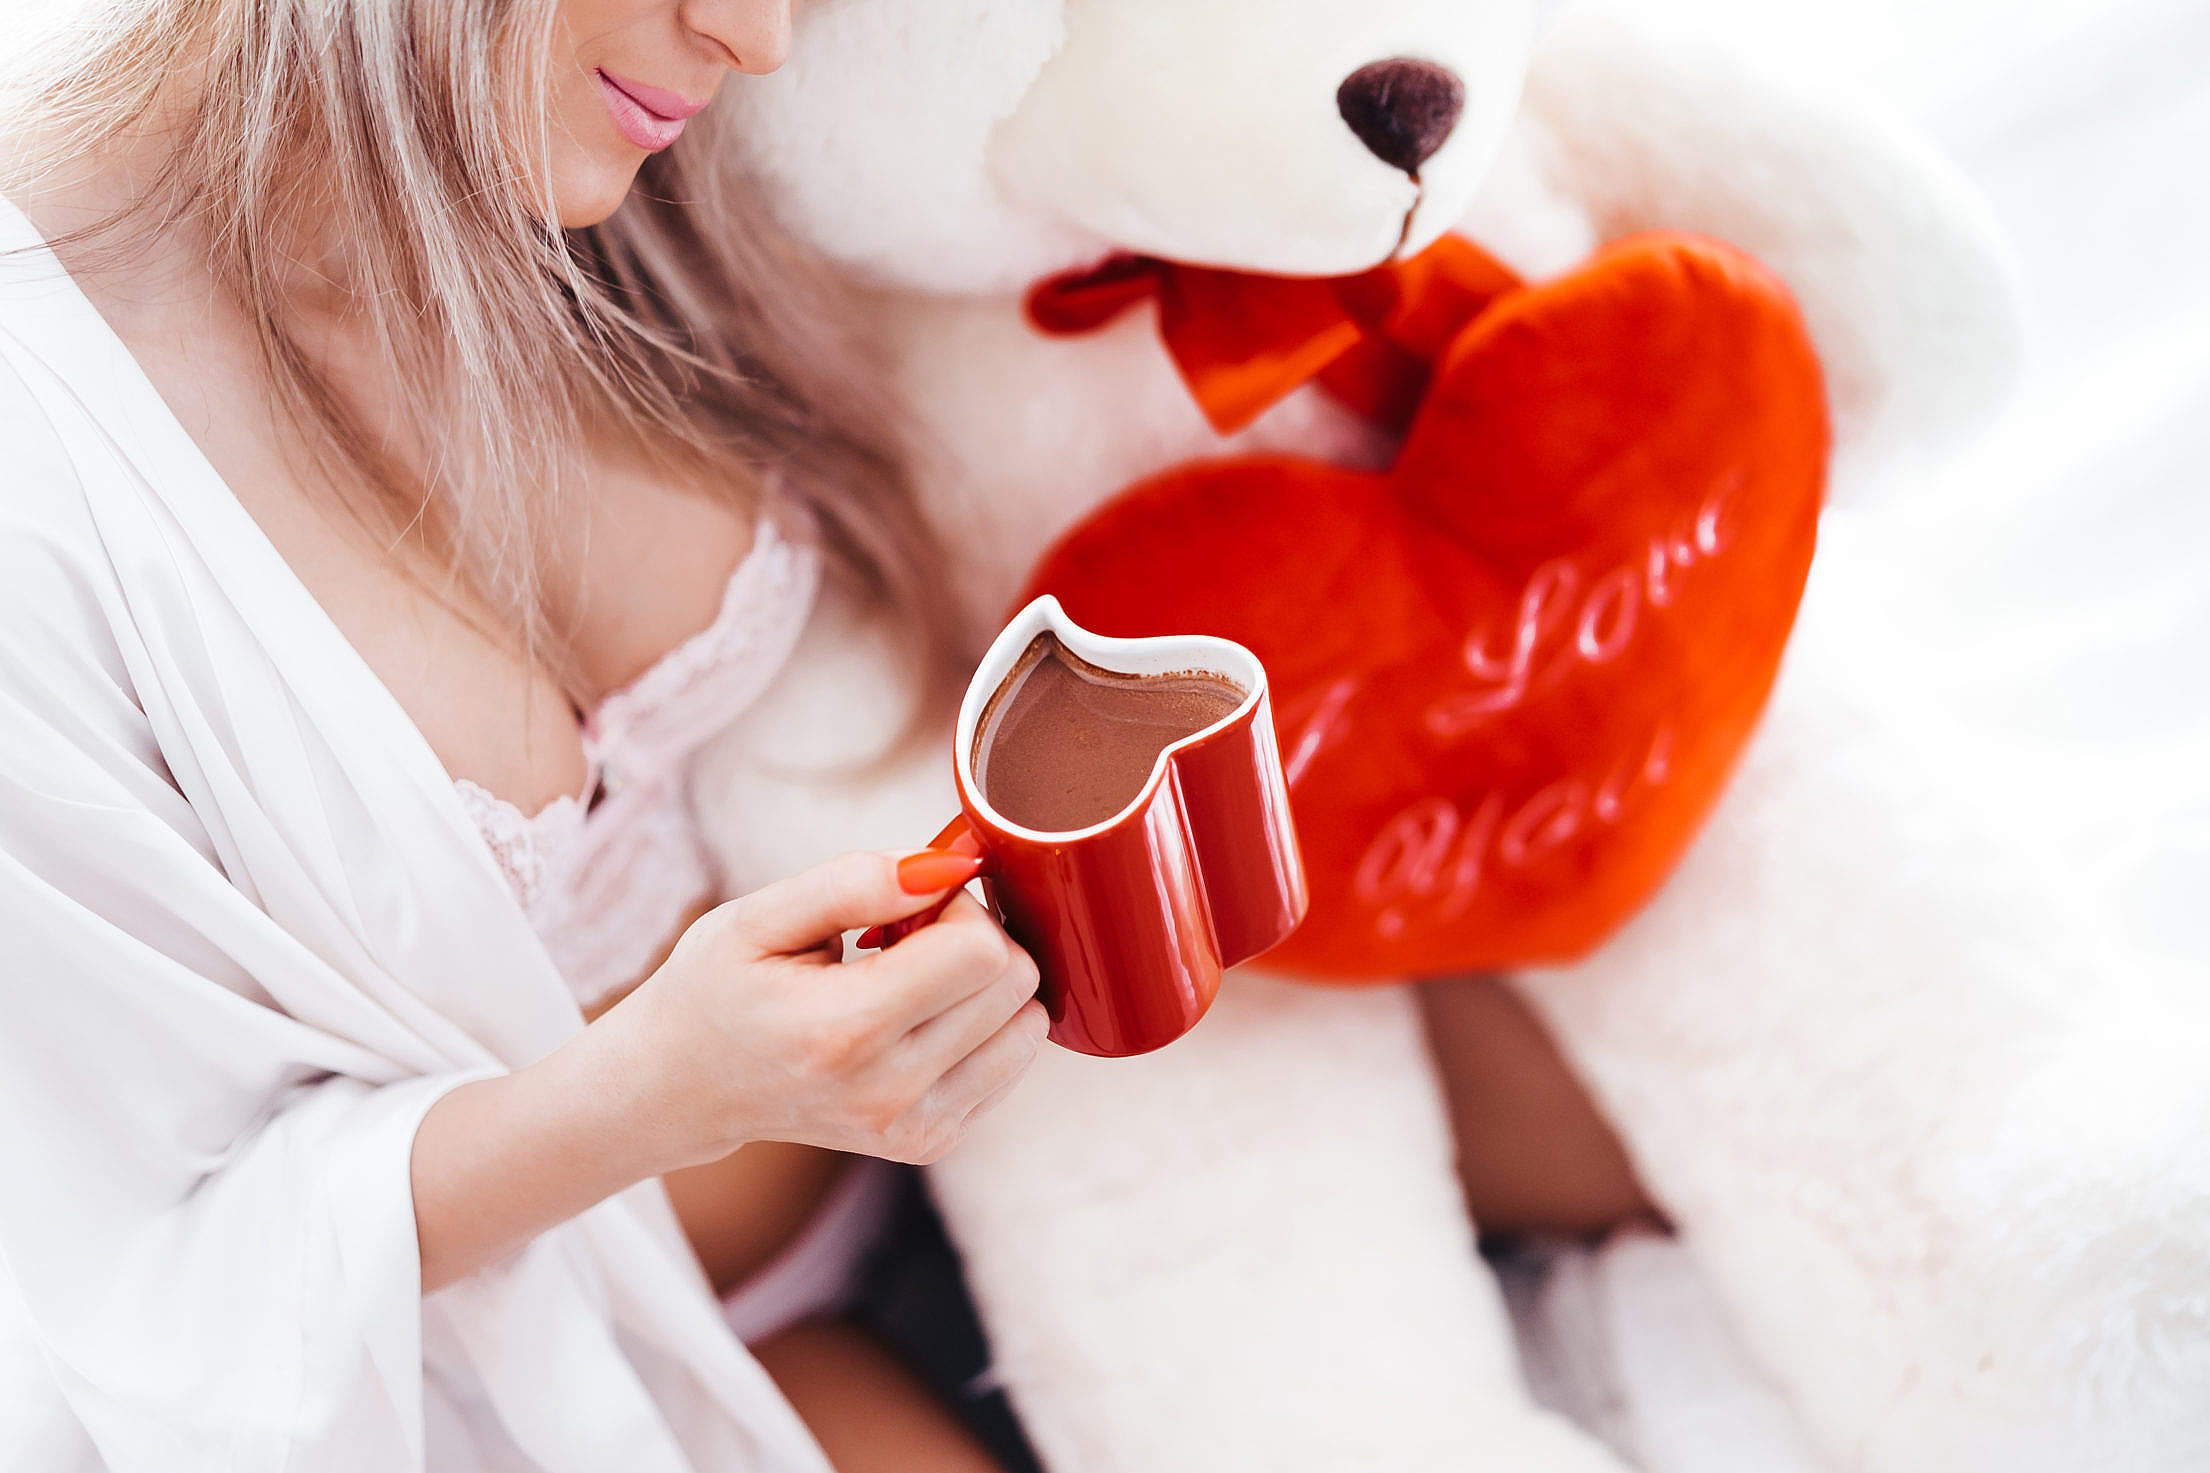 Hot Chocolate in a Heart Shaped Cup Free Stock Photo